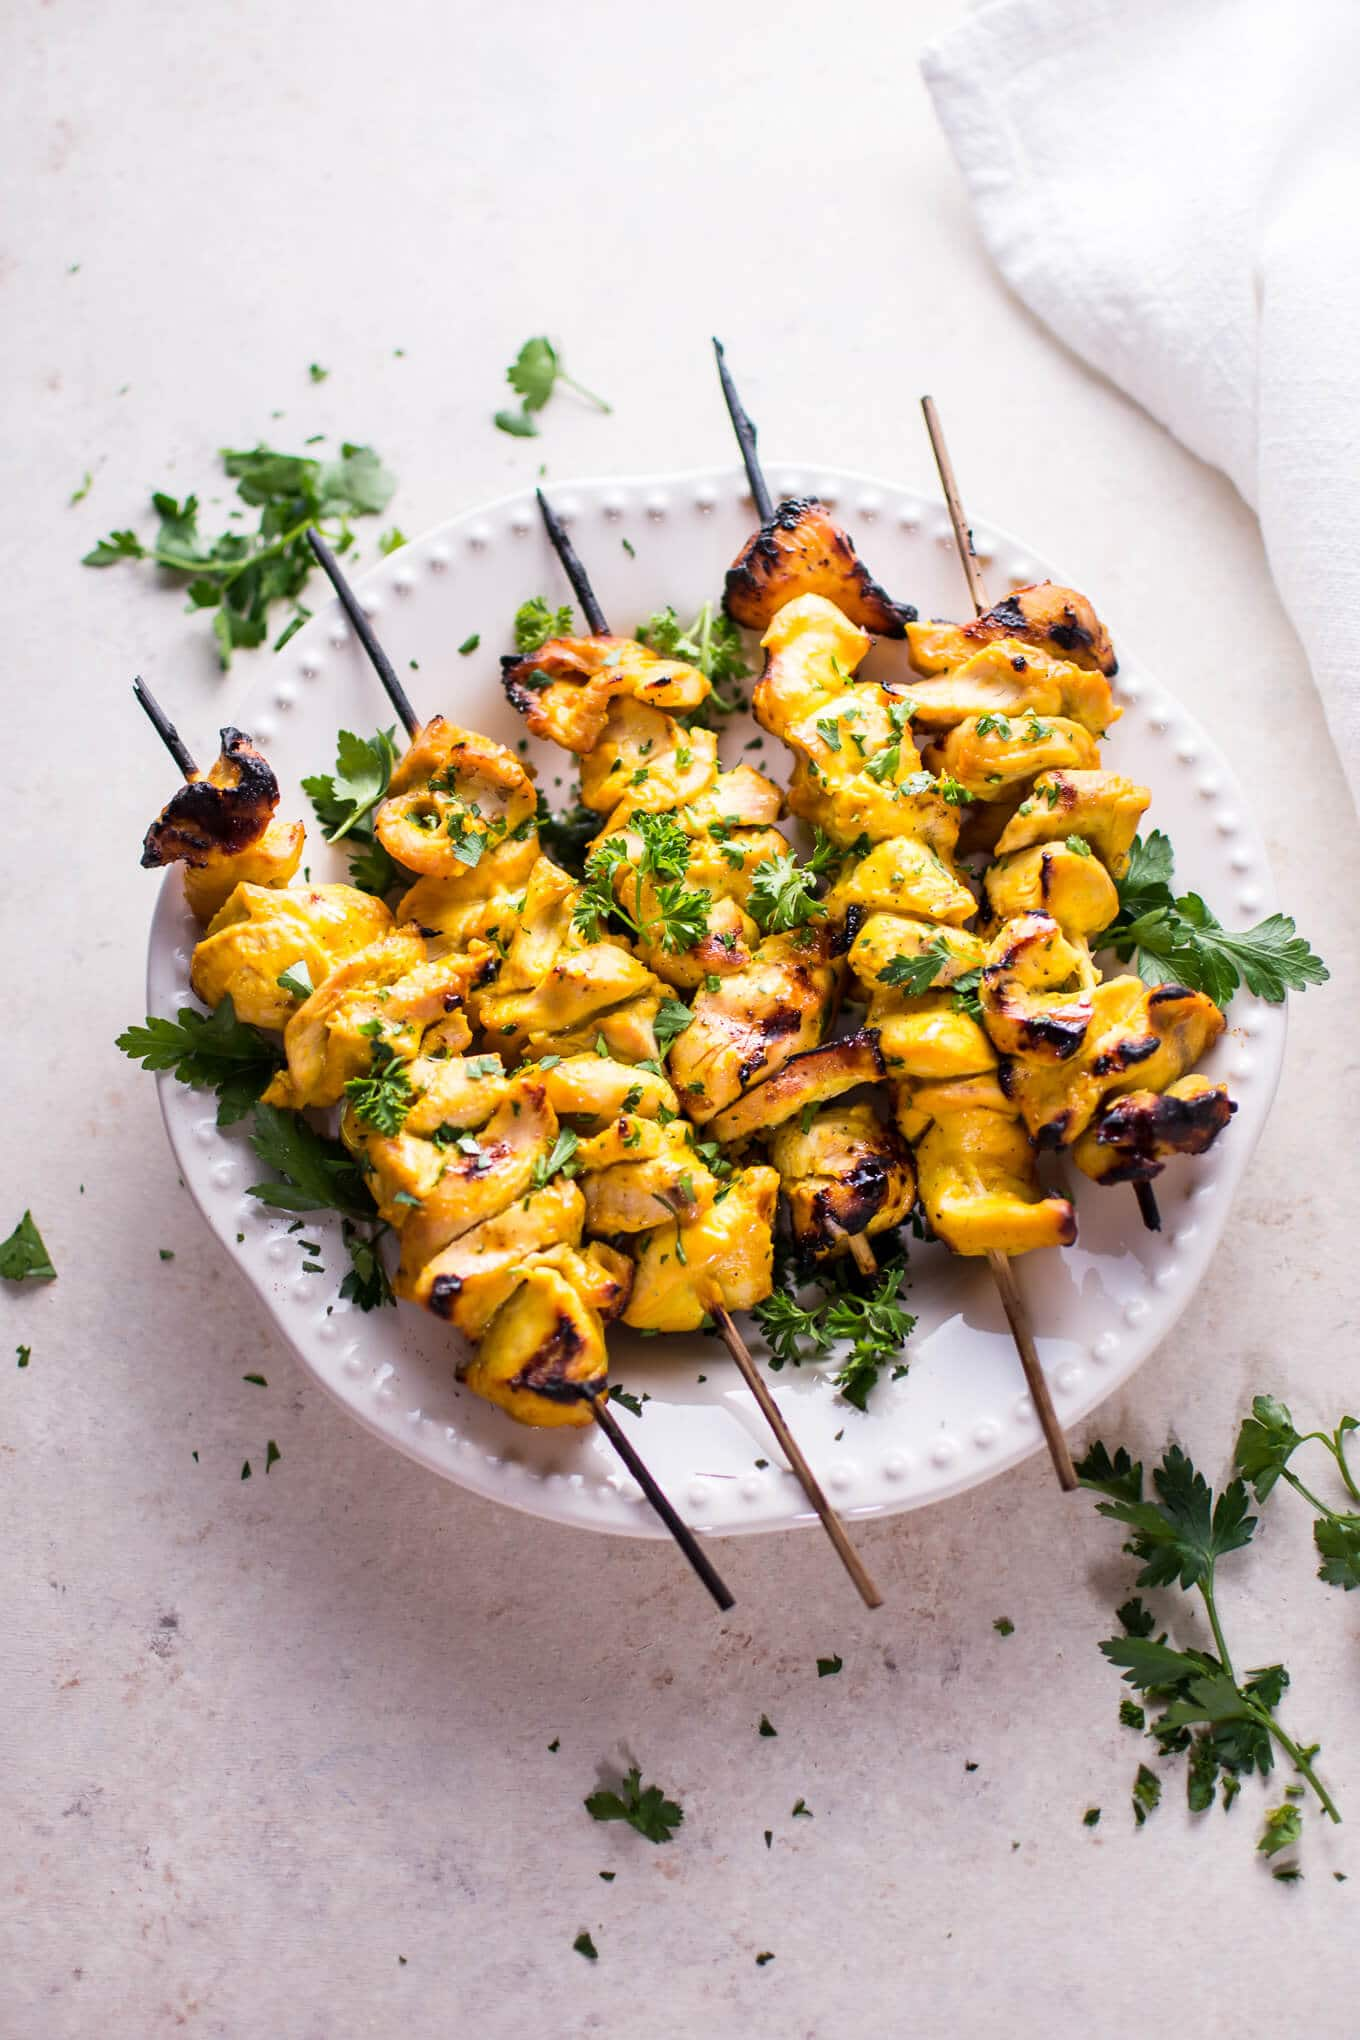 15 Camping Skewer Recipes to Make Over Your Campfire ...